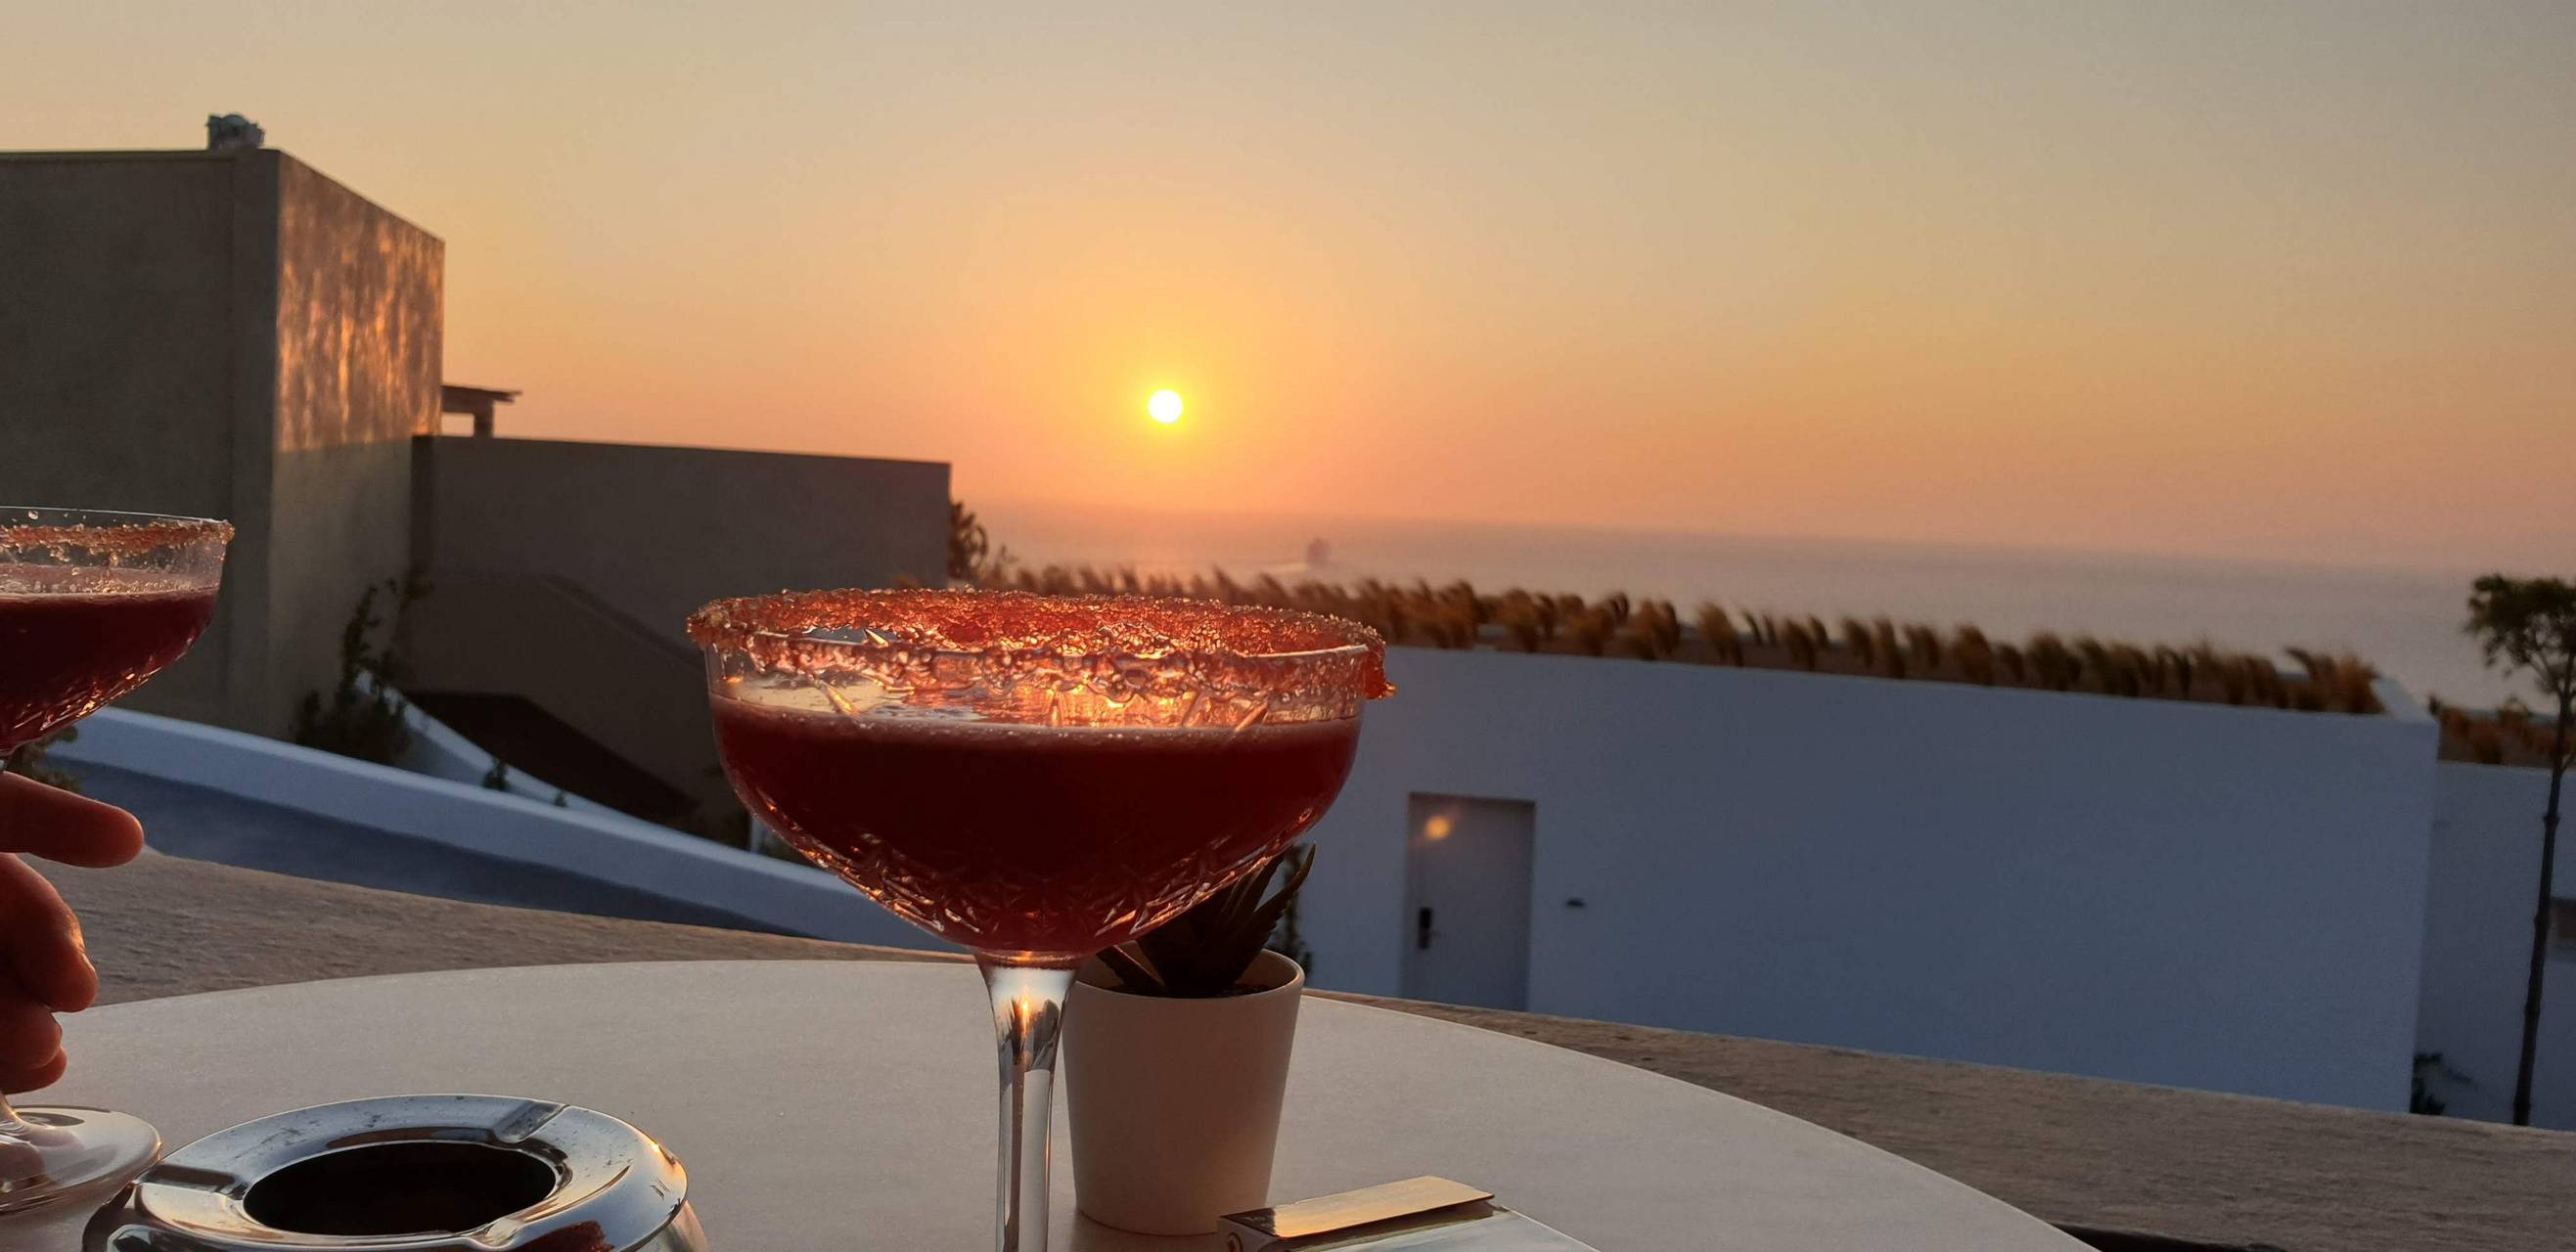 Cocktails in sunset